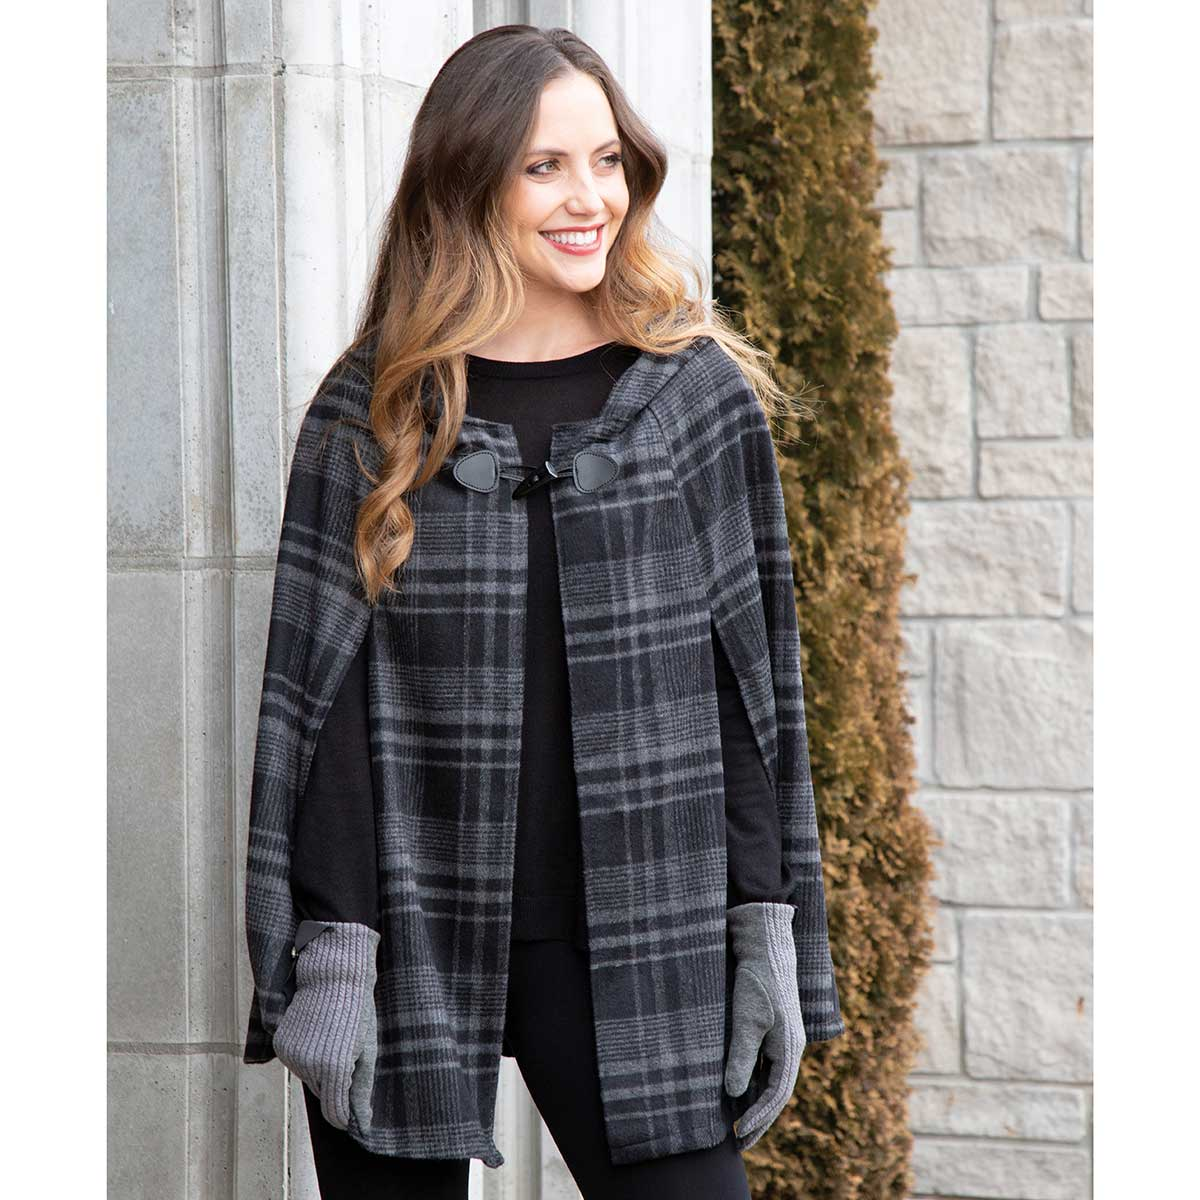 Dark Grey and Black Plaid Cape with Toggle Clasp and Hood